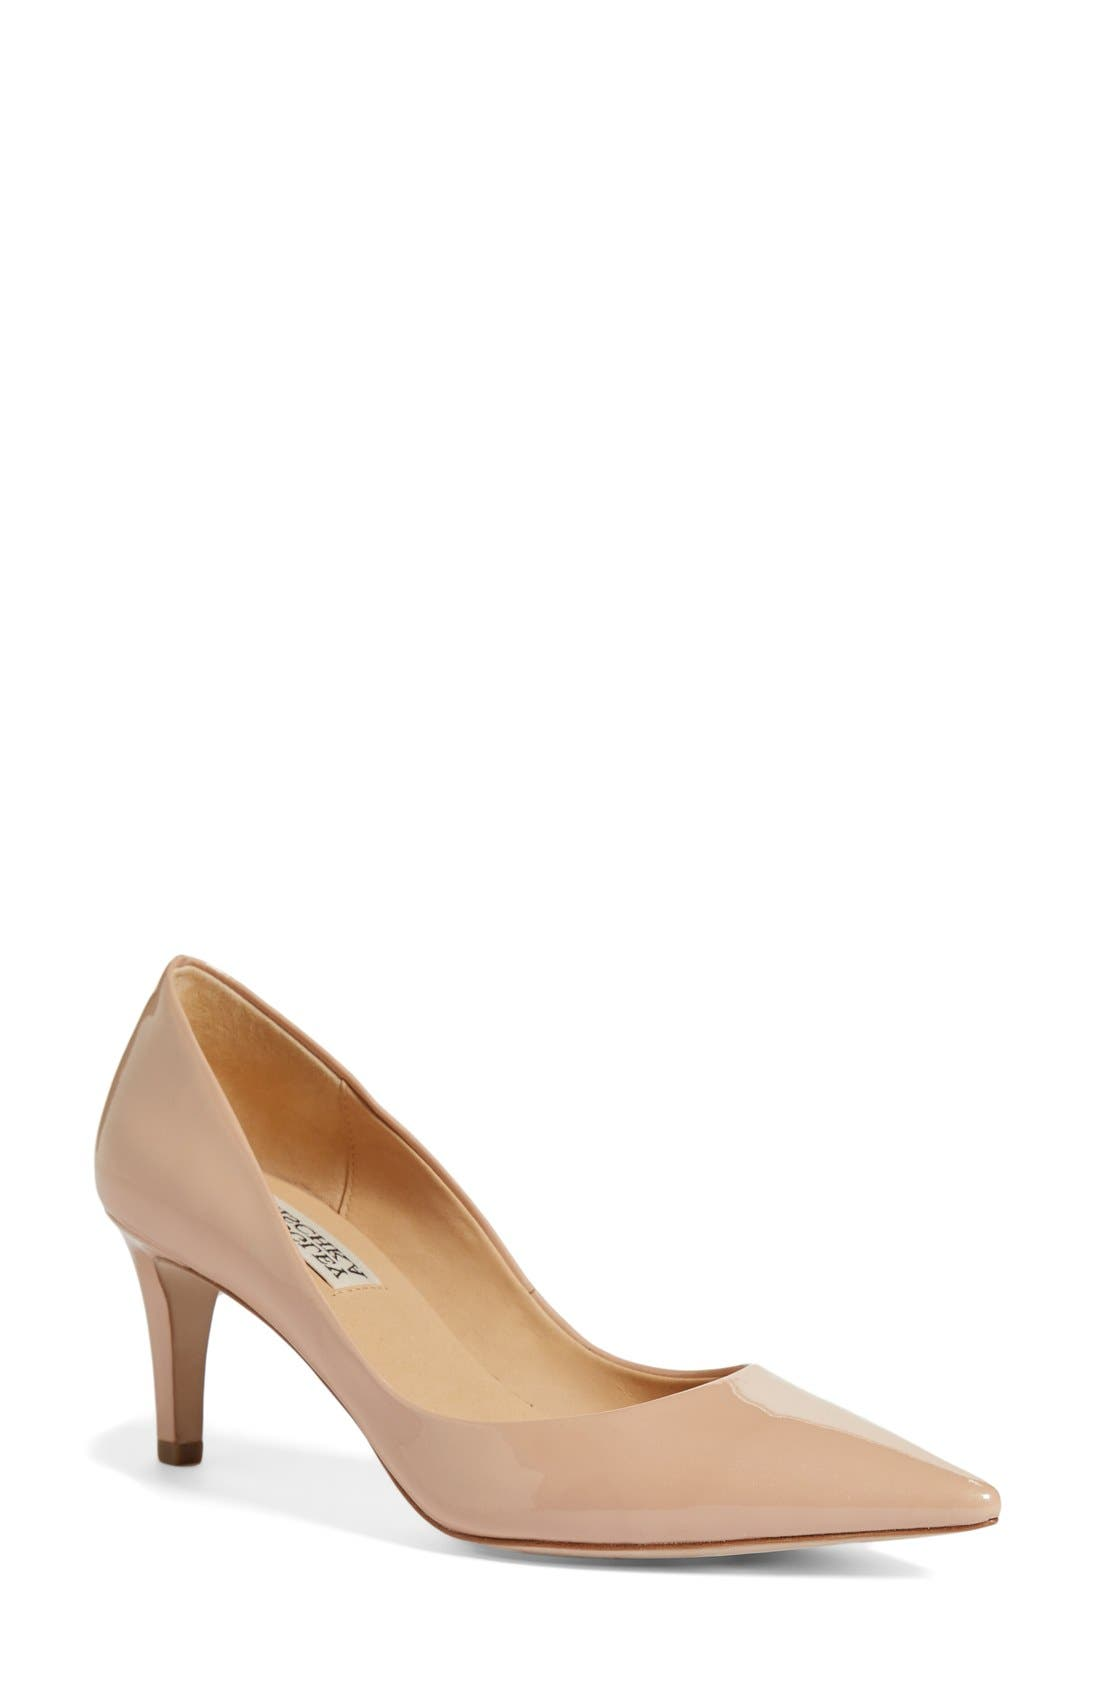 Alternate Image 1 Selected - Badgley Mischka 'Poise II' Pointy Toe Pump (Women)